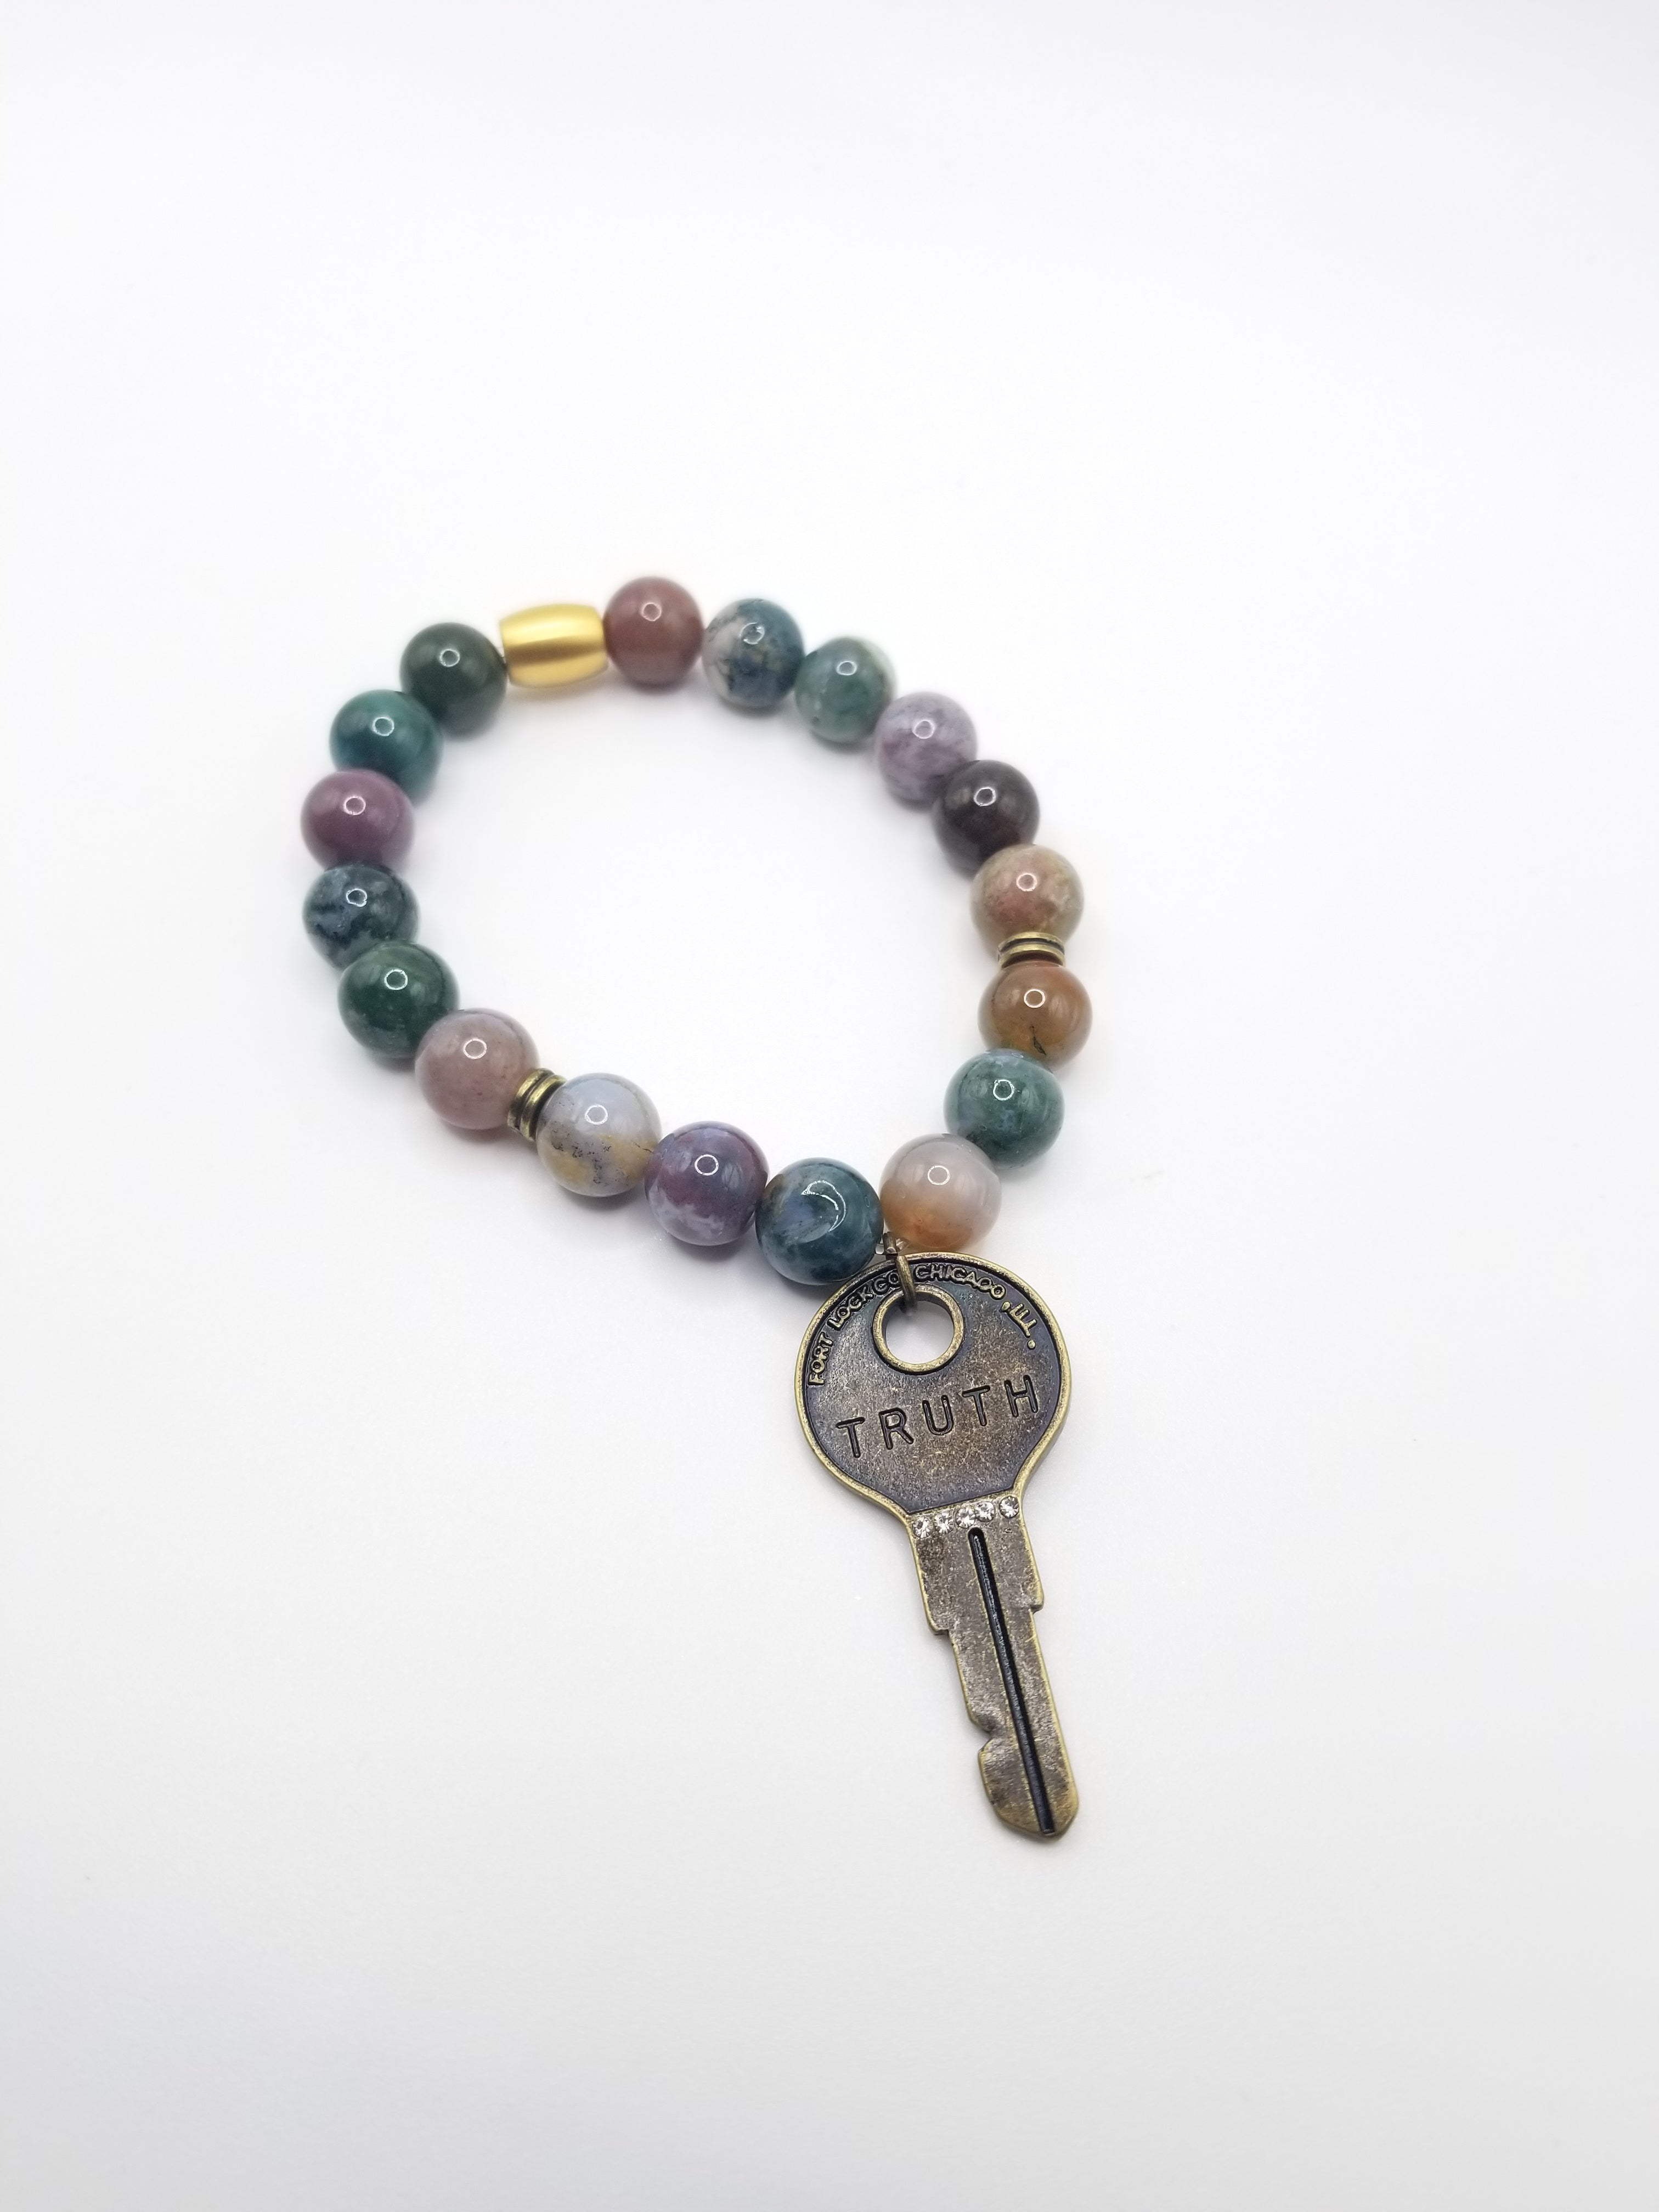 Agate Beaded Bracelet with TRUTH Key Pendant